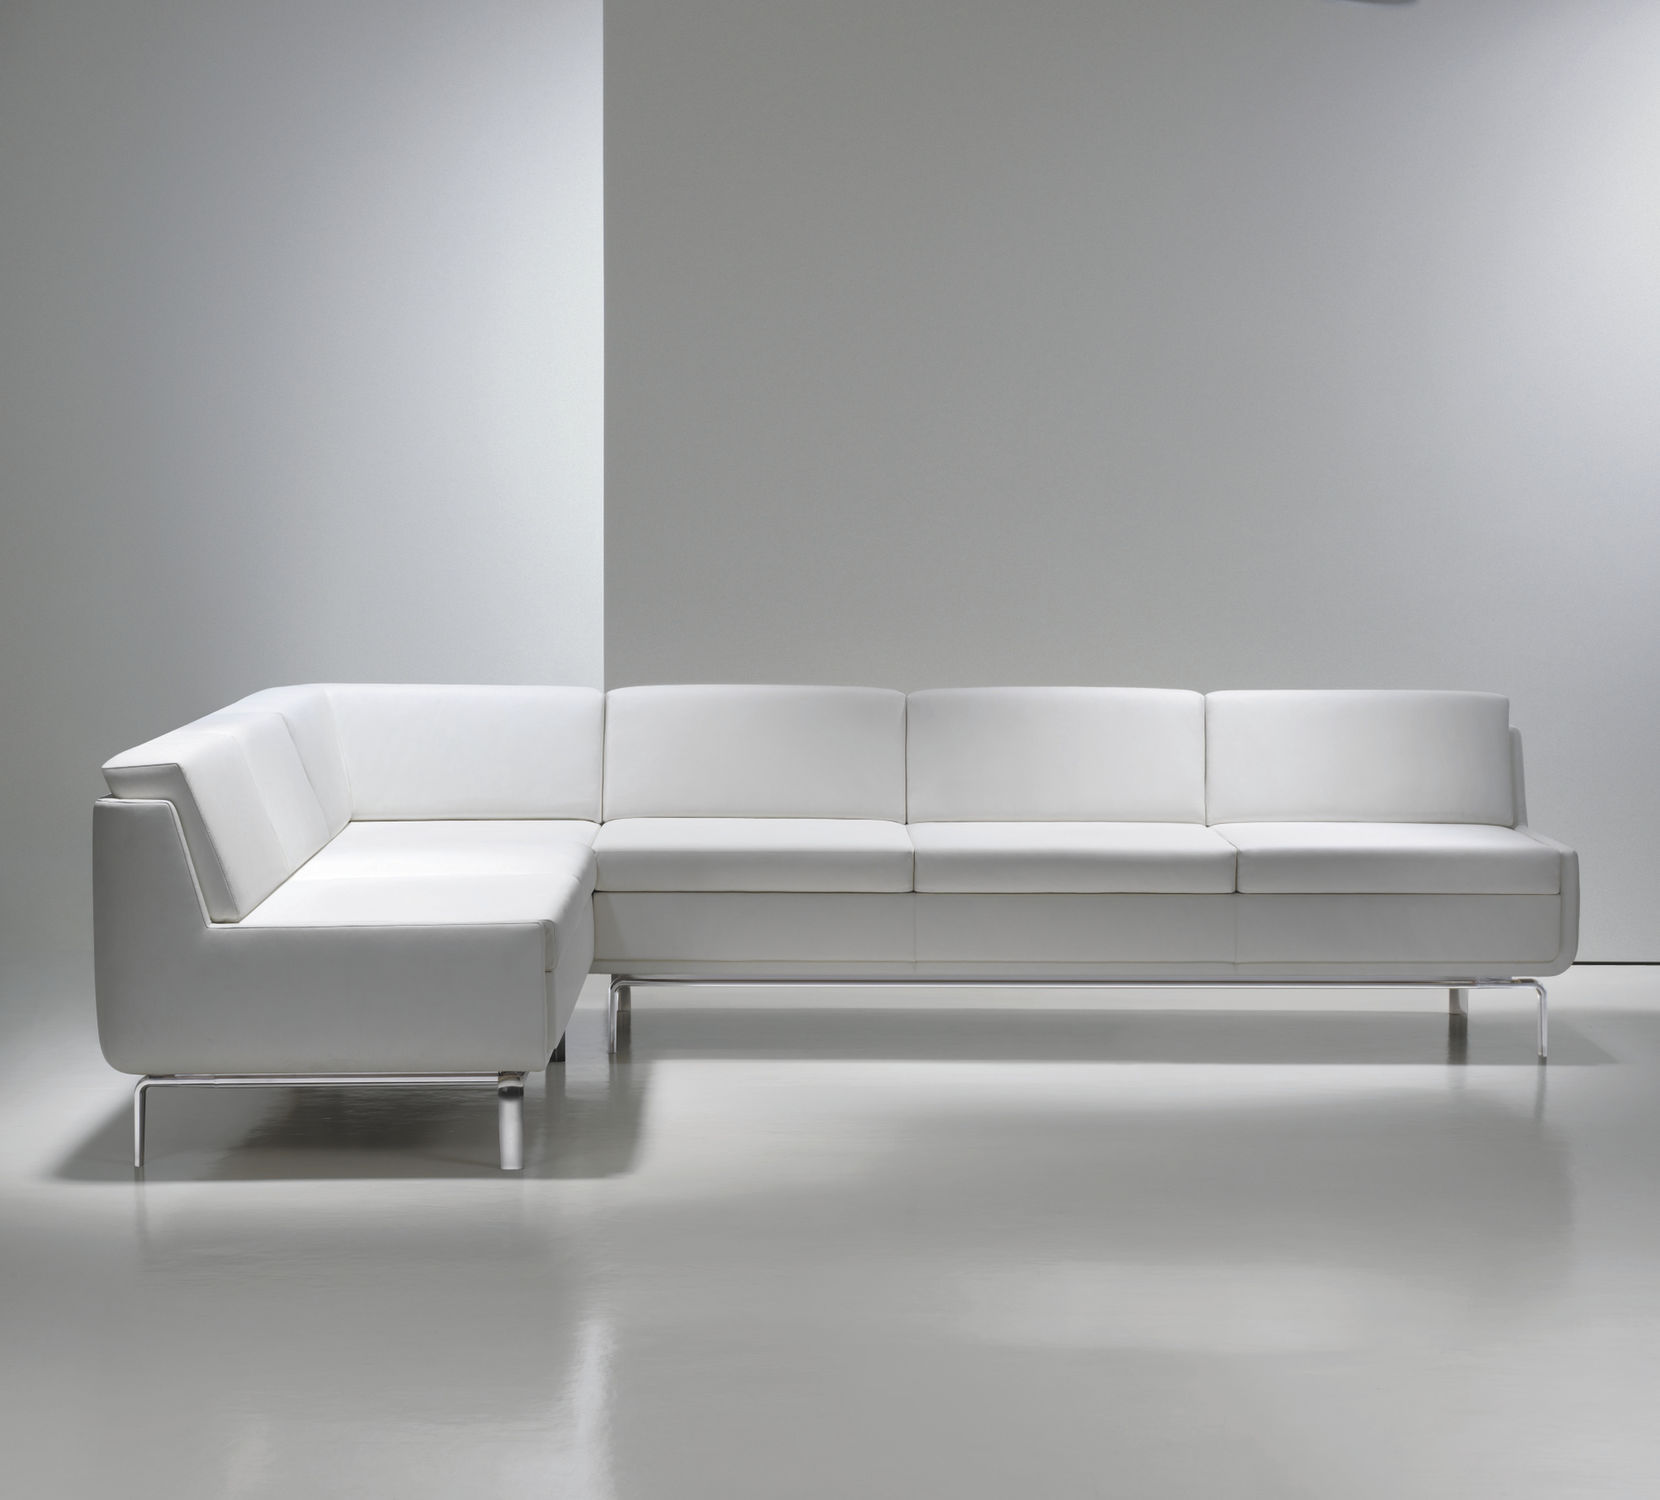 orner sofa / contemporary / fabric / by rik Levy - GI ... - ^